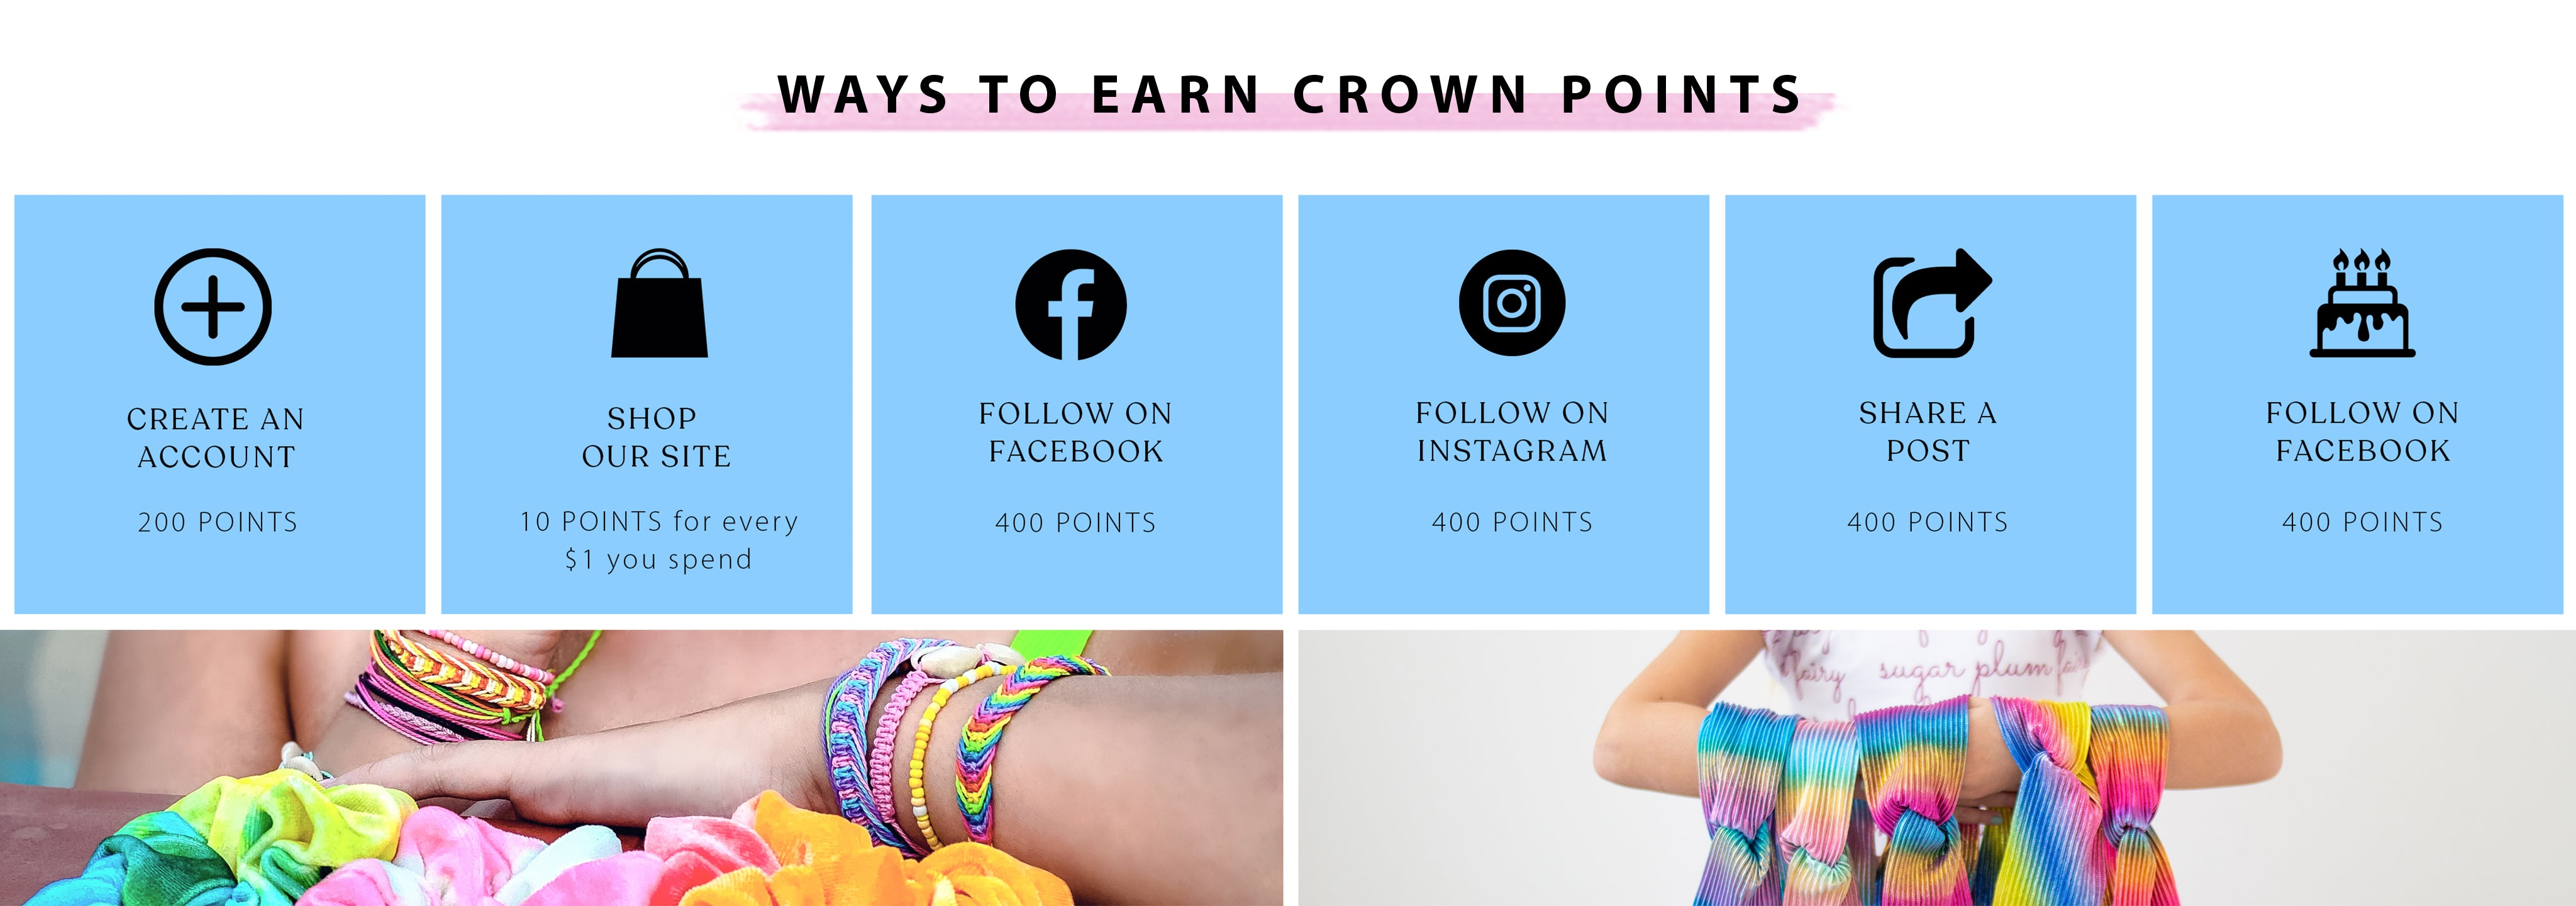 frog-sac-crown-points-rewards-program